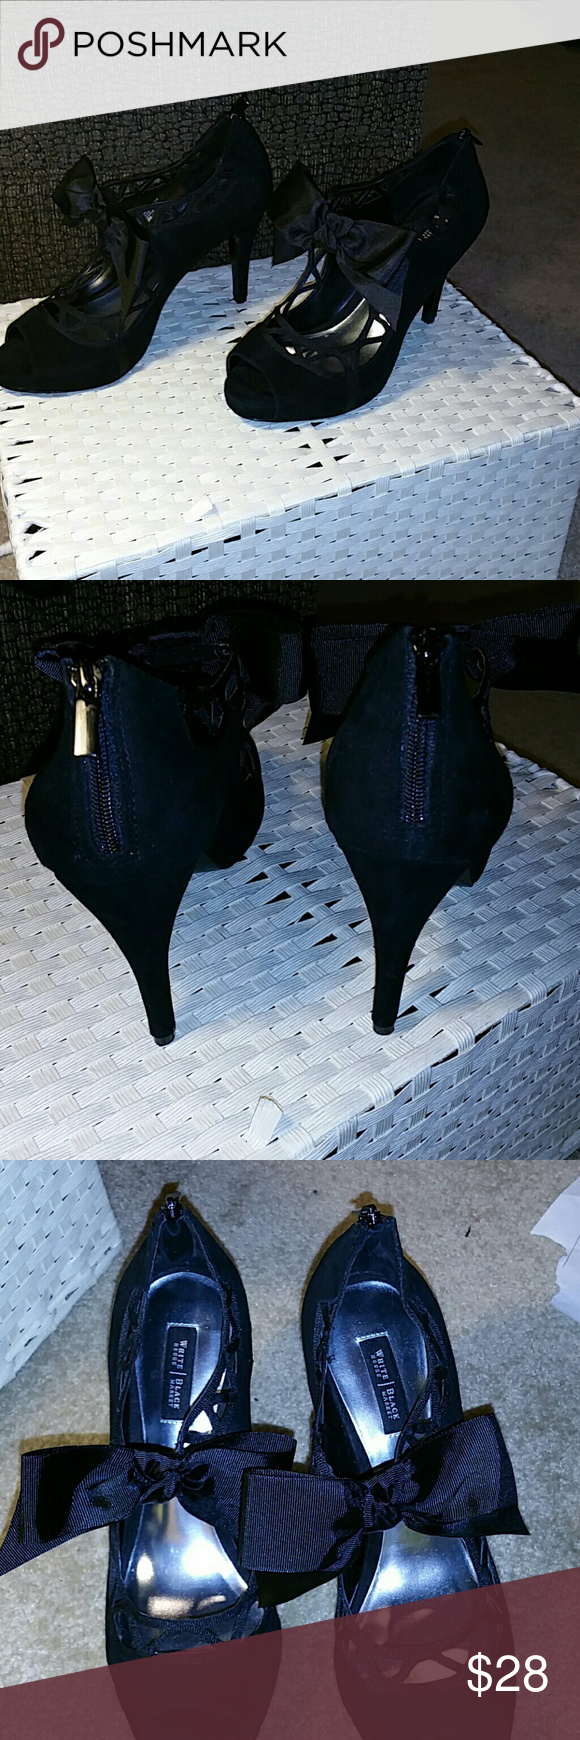 """WHBM black suede heels with black ribbon  bow WHBM black suede heels with black ribbon boe. Size 8. Maybe wore once. The heel is approximately 4"""" with approximately 1 / 2"""" toe. White House Black Market Shoes Heels"""